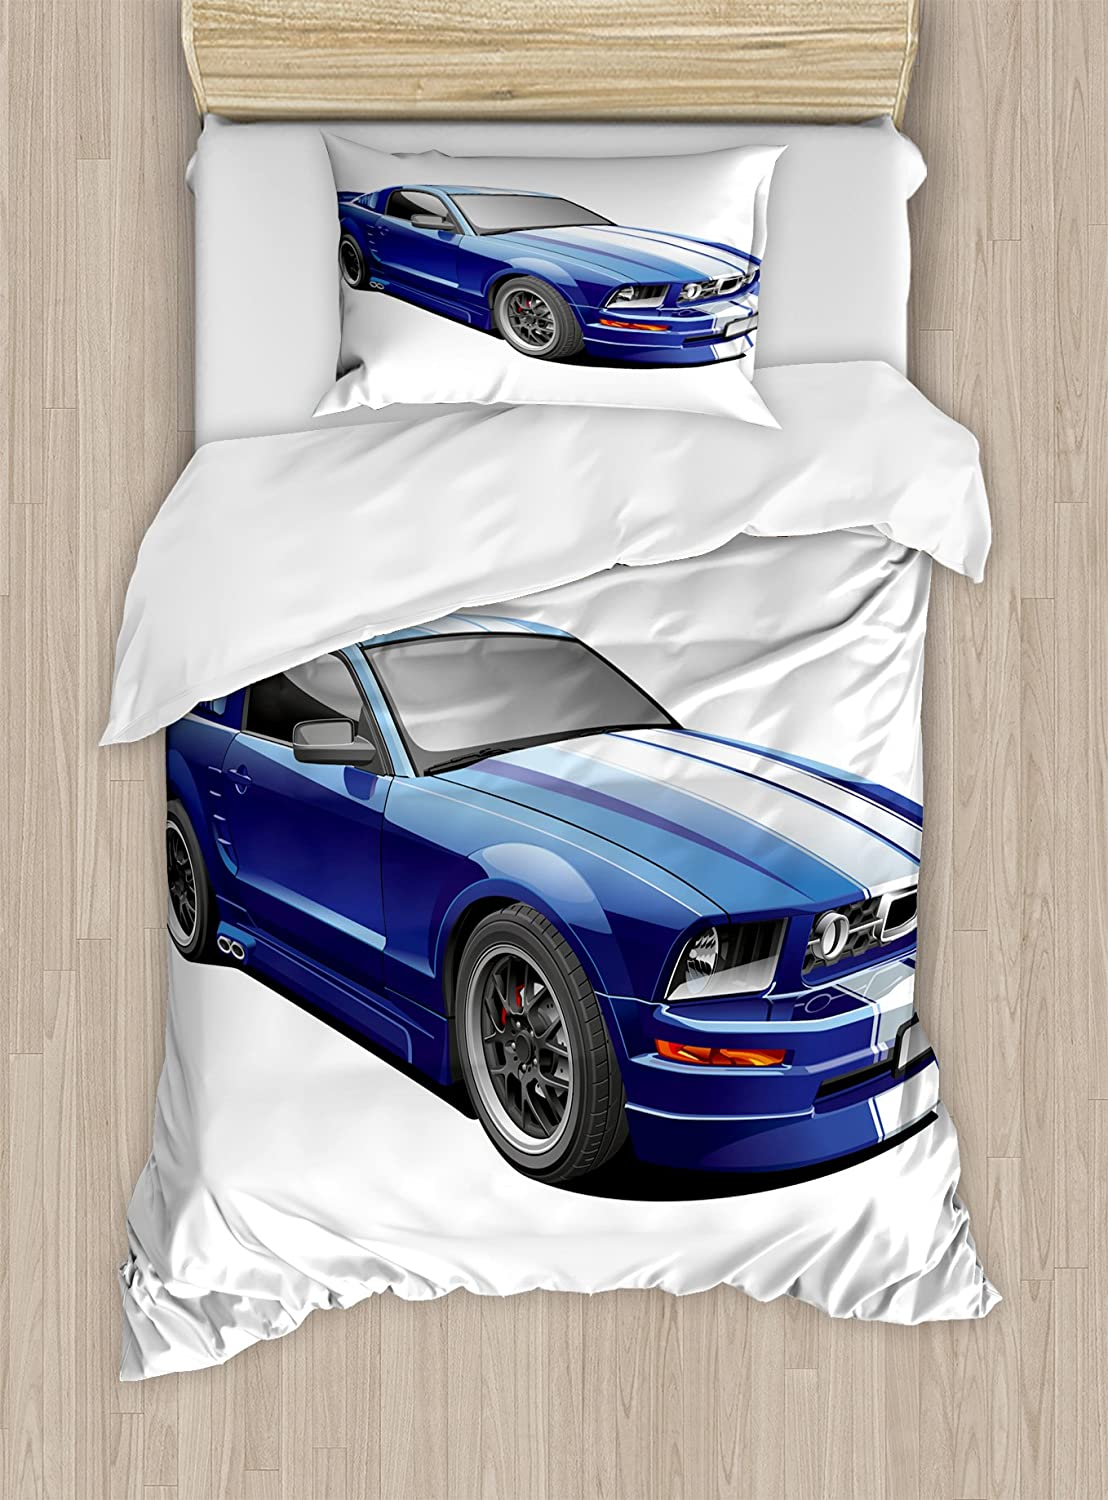 Ambesonne Teen Room Duvet Cover Set, American Auto Racing Theme Car Sports Competition Speed Winner Boys Kids Graphic, Decorative 2 Piece Bedding Set with 1 Pillow Sham, Twin Size, Blue Grey